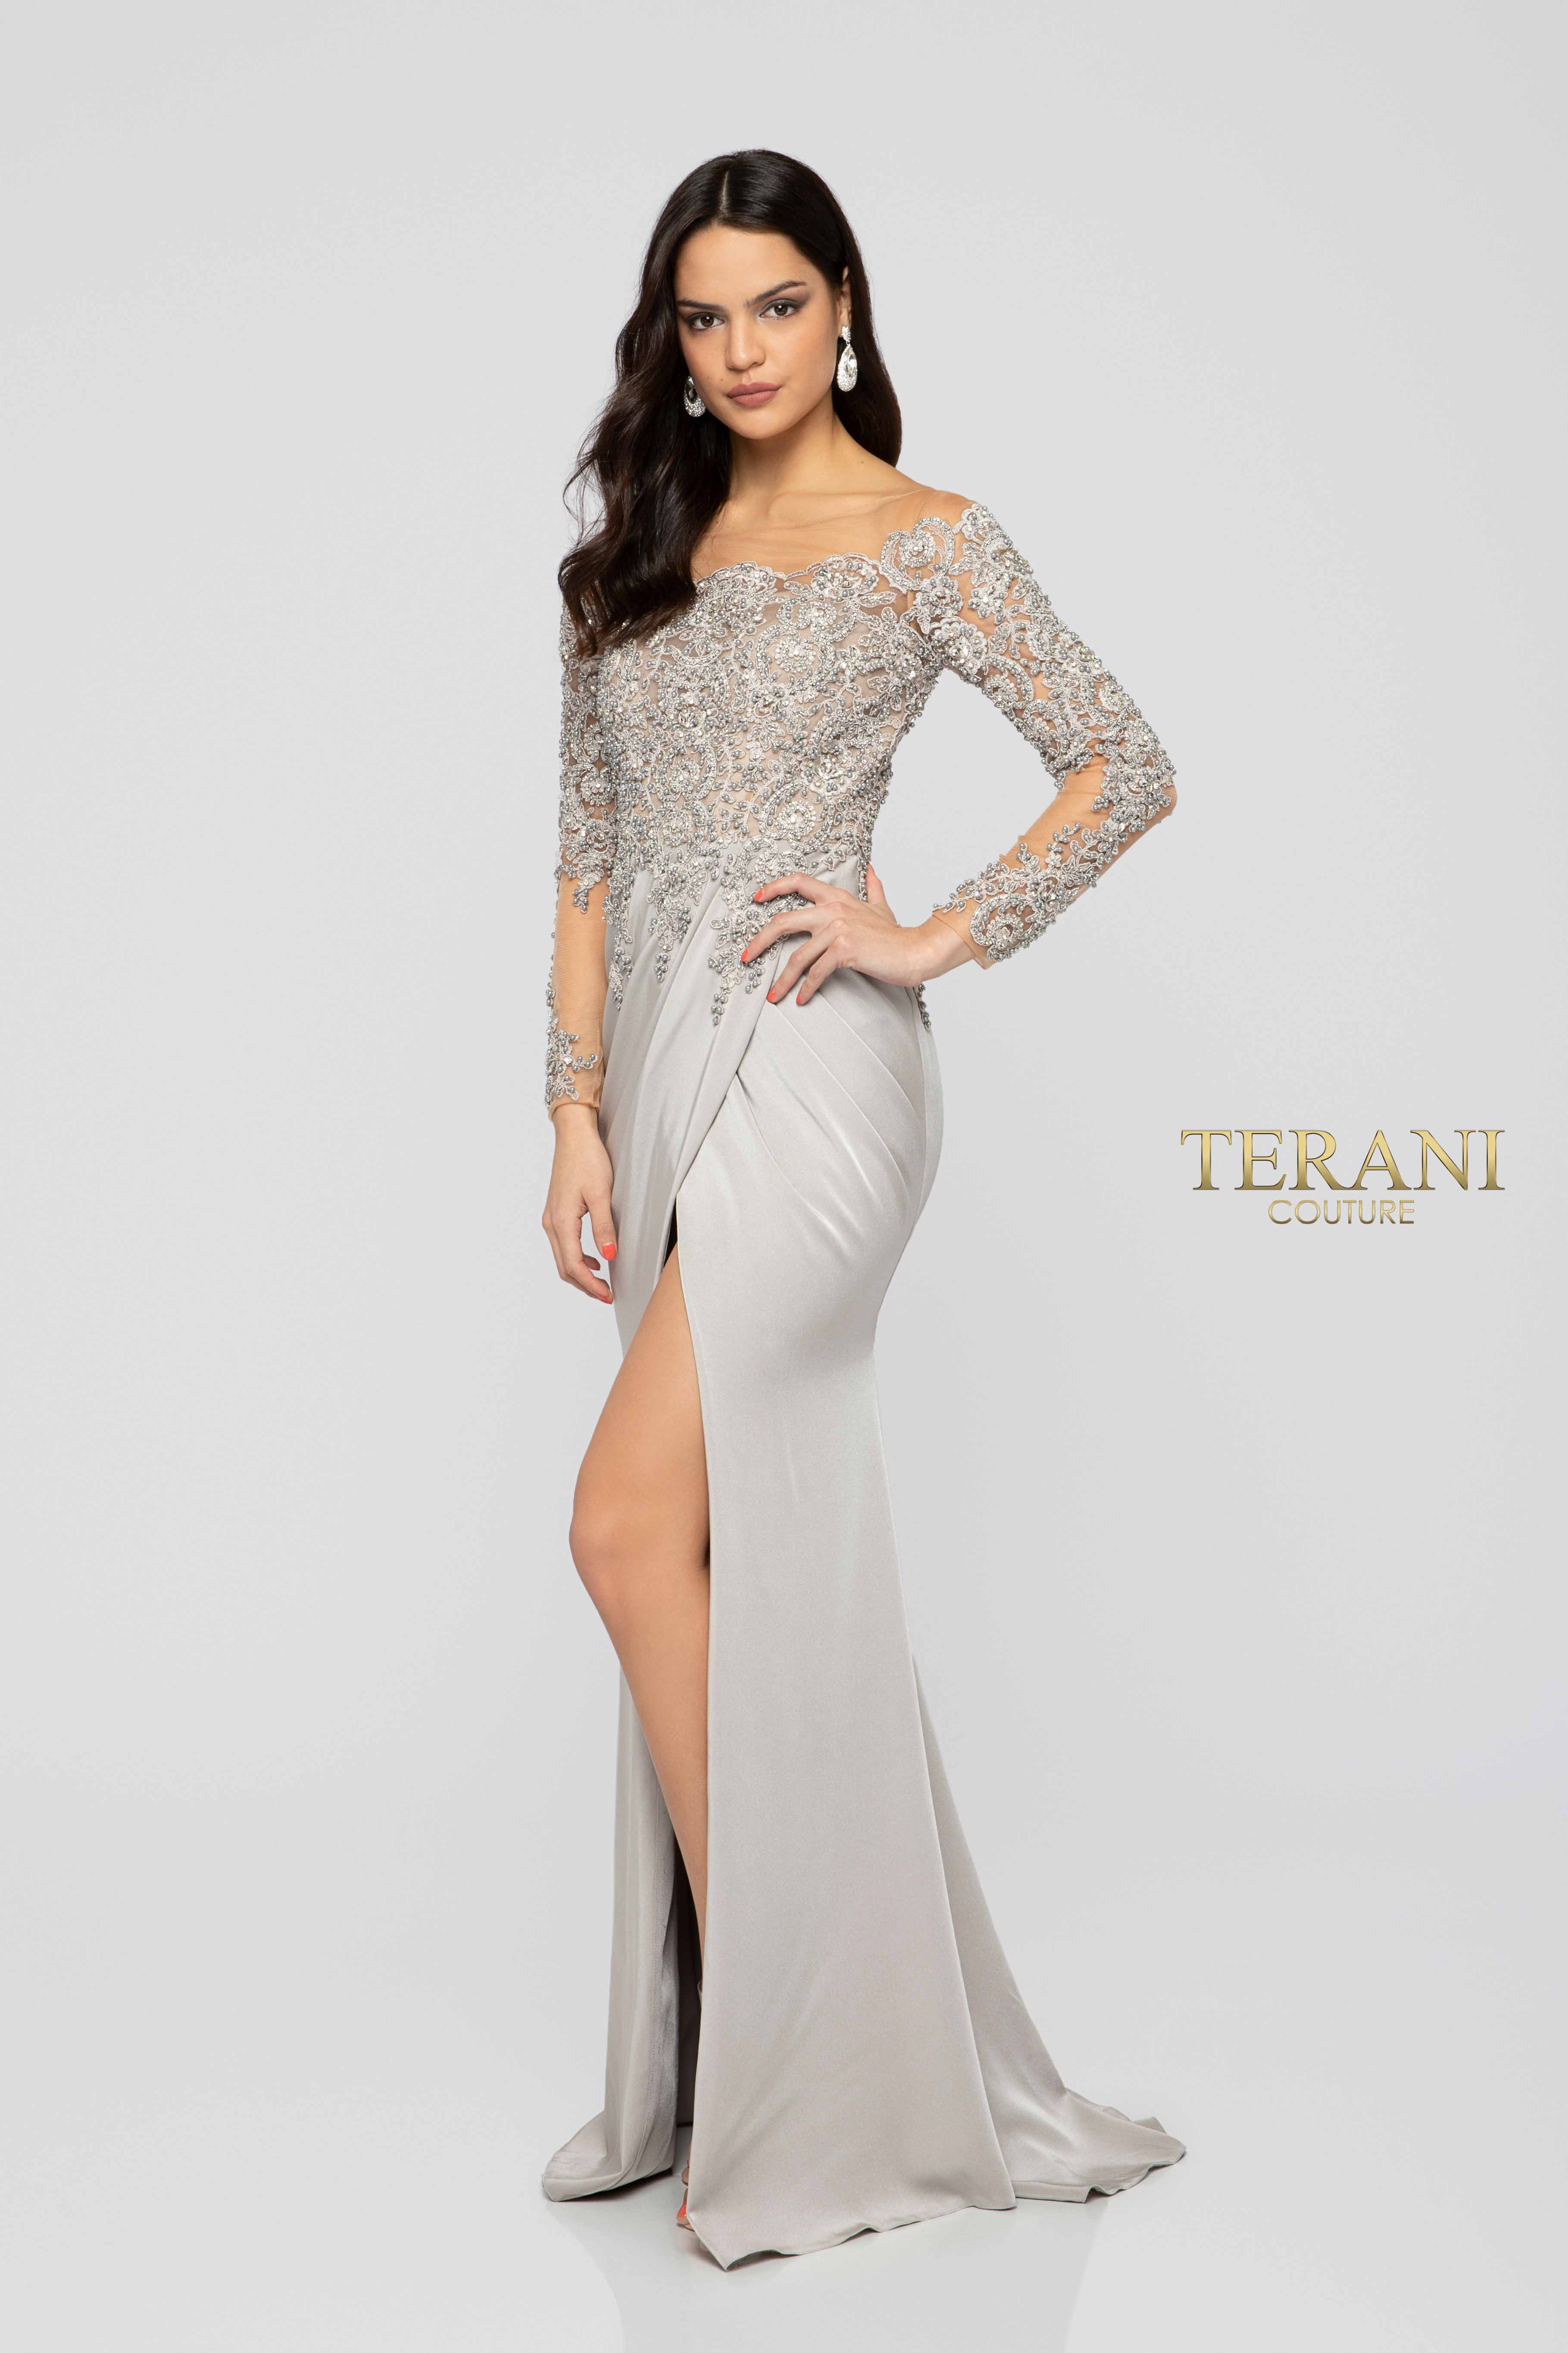 fc249b21443 Glamour By Terani Couture High Neck Illusion Beaded Bodice Long Dress